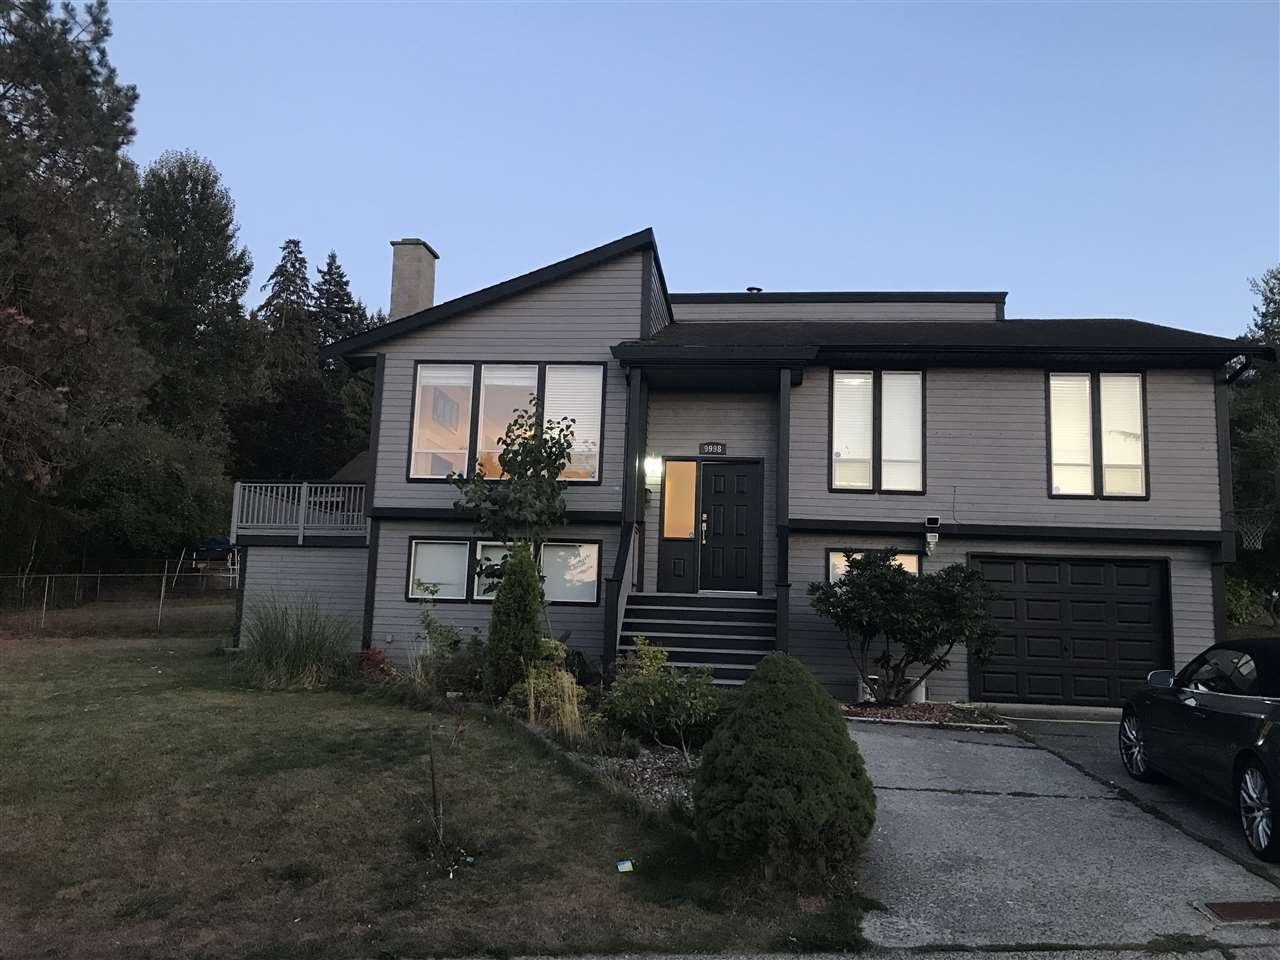 Good Location, Convenient,  large 8382 SF lot with an awesome VIEW of North Shore Mountains, Renovated with quality material, fabrics and appliances. Easy access to New West, Perimeter Rd., Alex Fraser, and 5 minutes away from Scott Road Skytrain station. Open House On Sunday Oct 1st 2017, 12:00-2:00pm